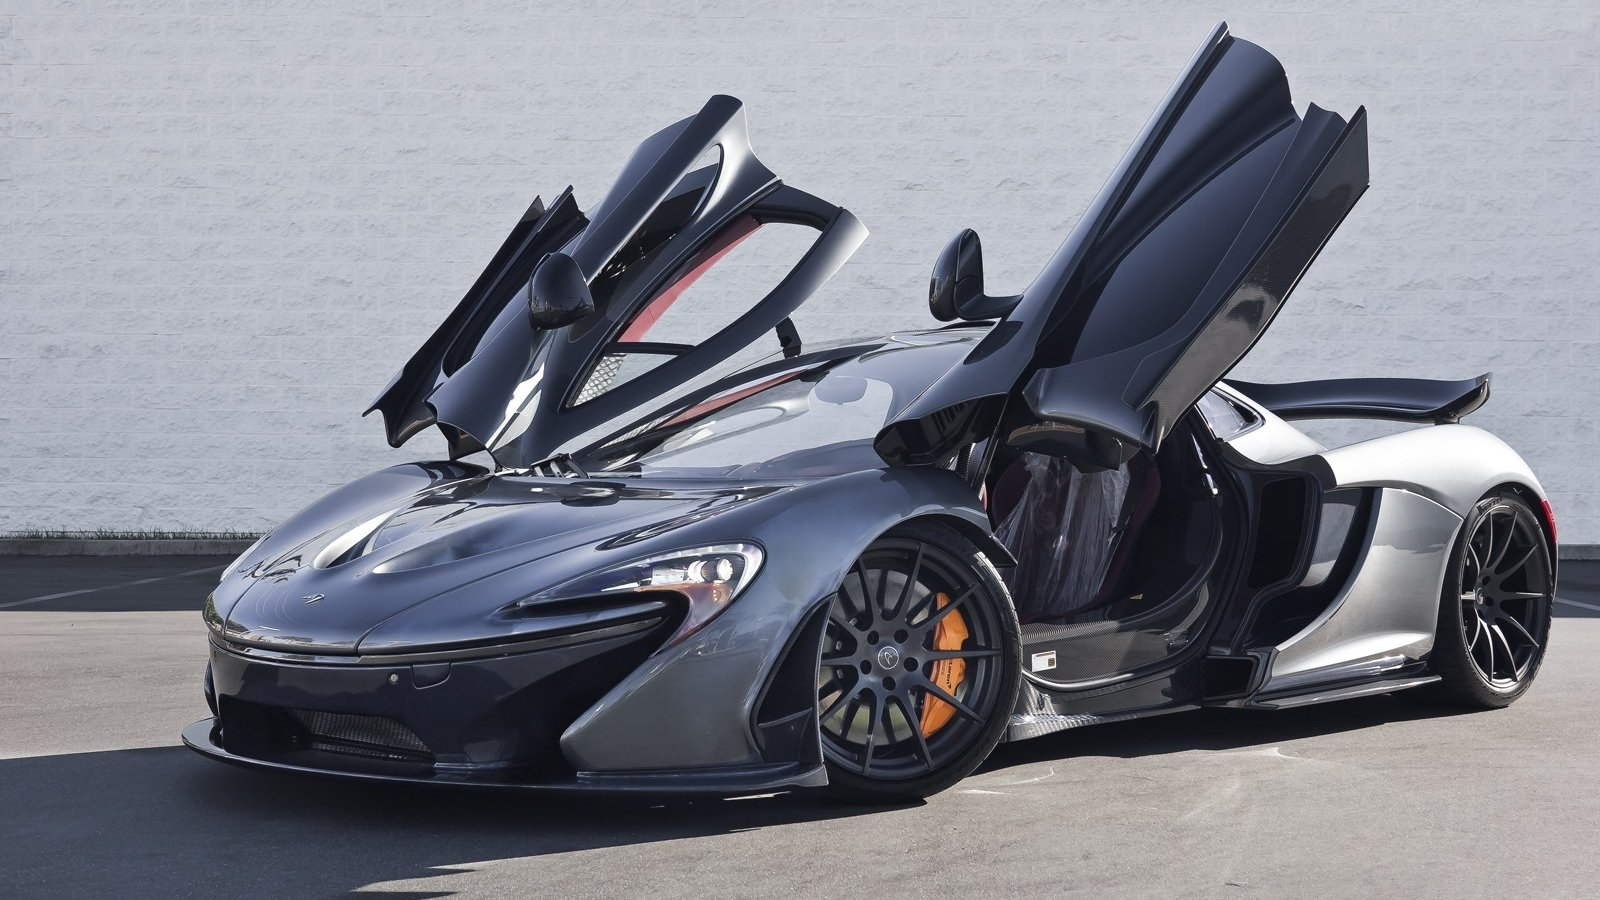 Mclaren P1 Latest News Reviews Specifications Prices Photos And Videos Top Speed